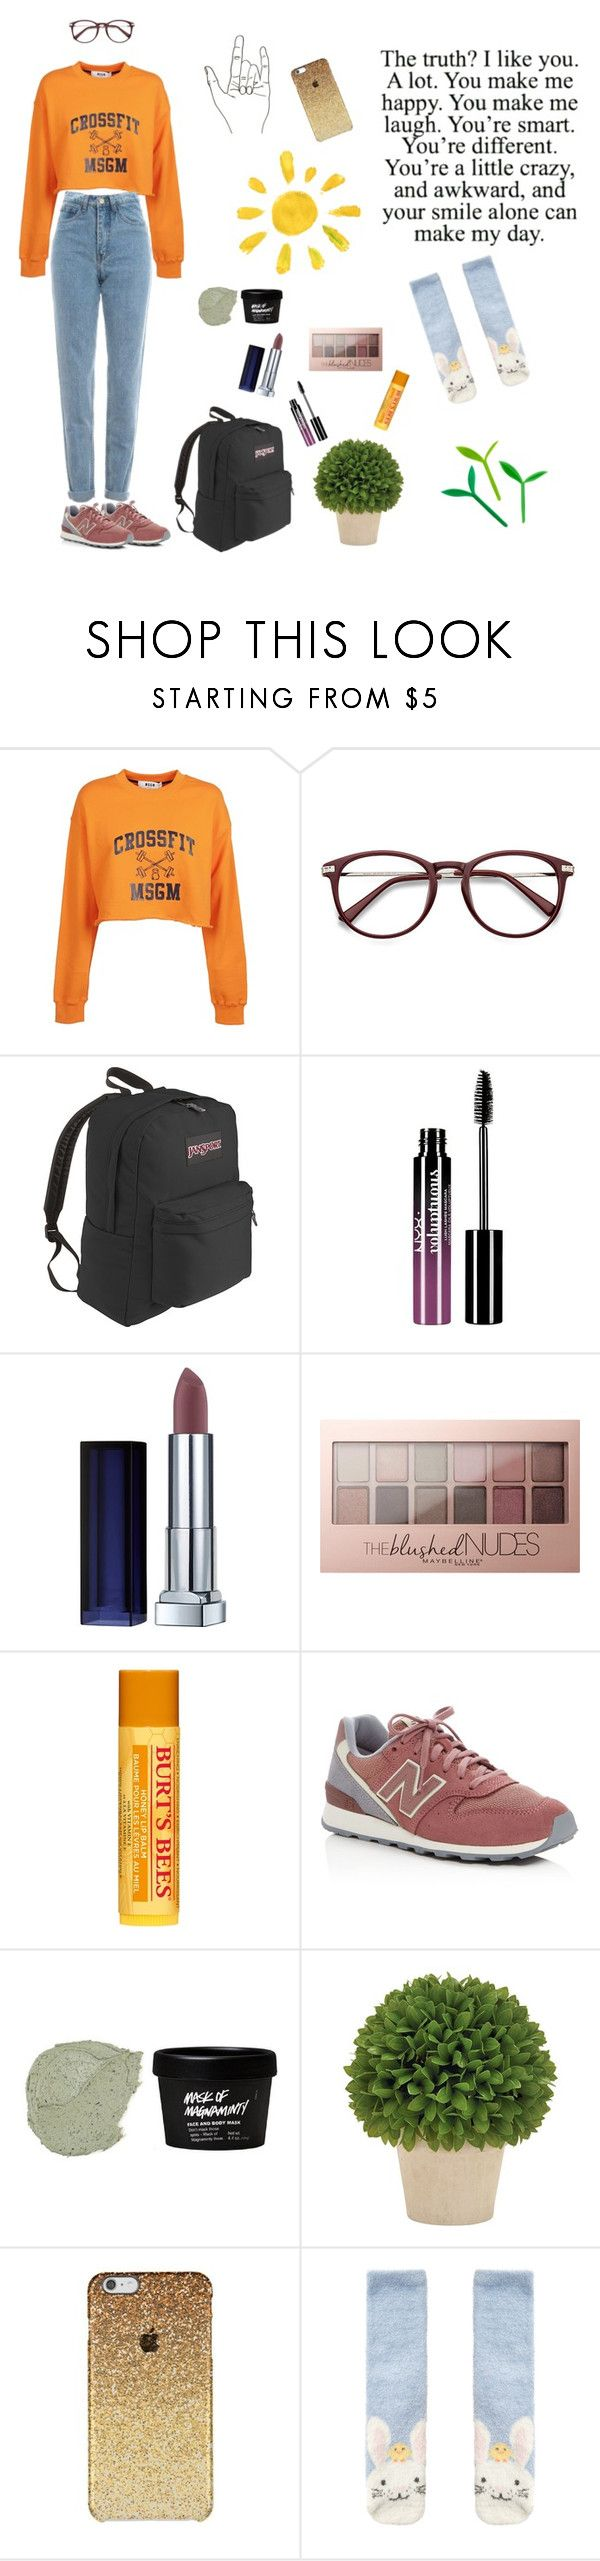 """""""Sunny Mornings at the Convenience Store"""" by owlenstar on Polyvore featuring MSGM, WALL, JanSport, Charlotte Russe, Maybelline, Burt's Bees, New Balance and Accessorize"""